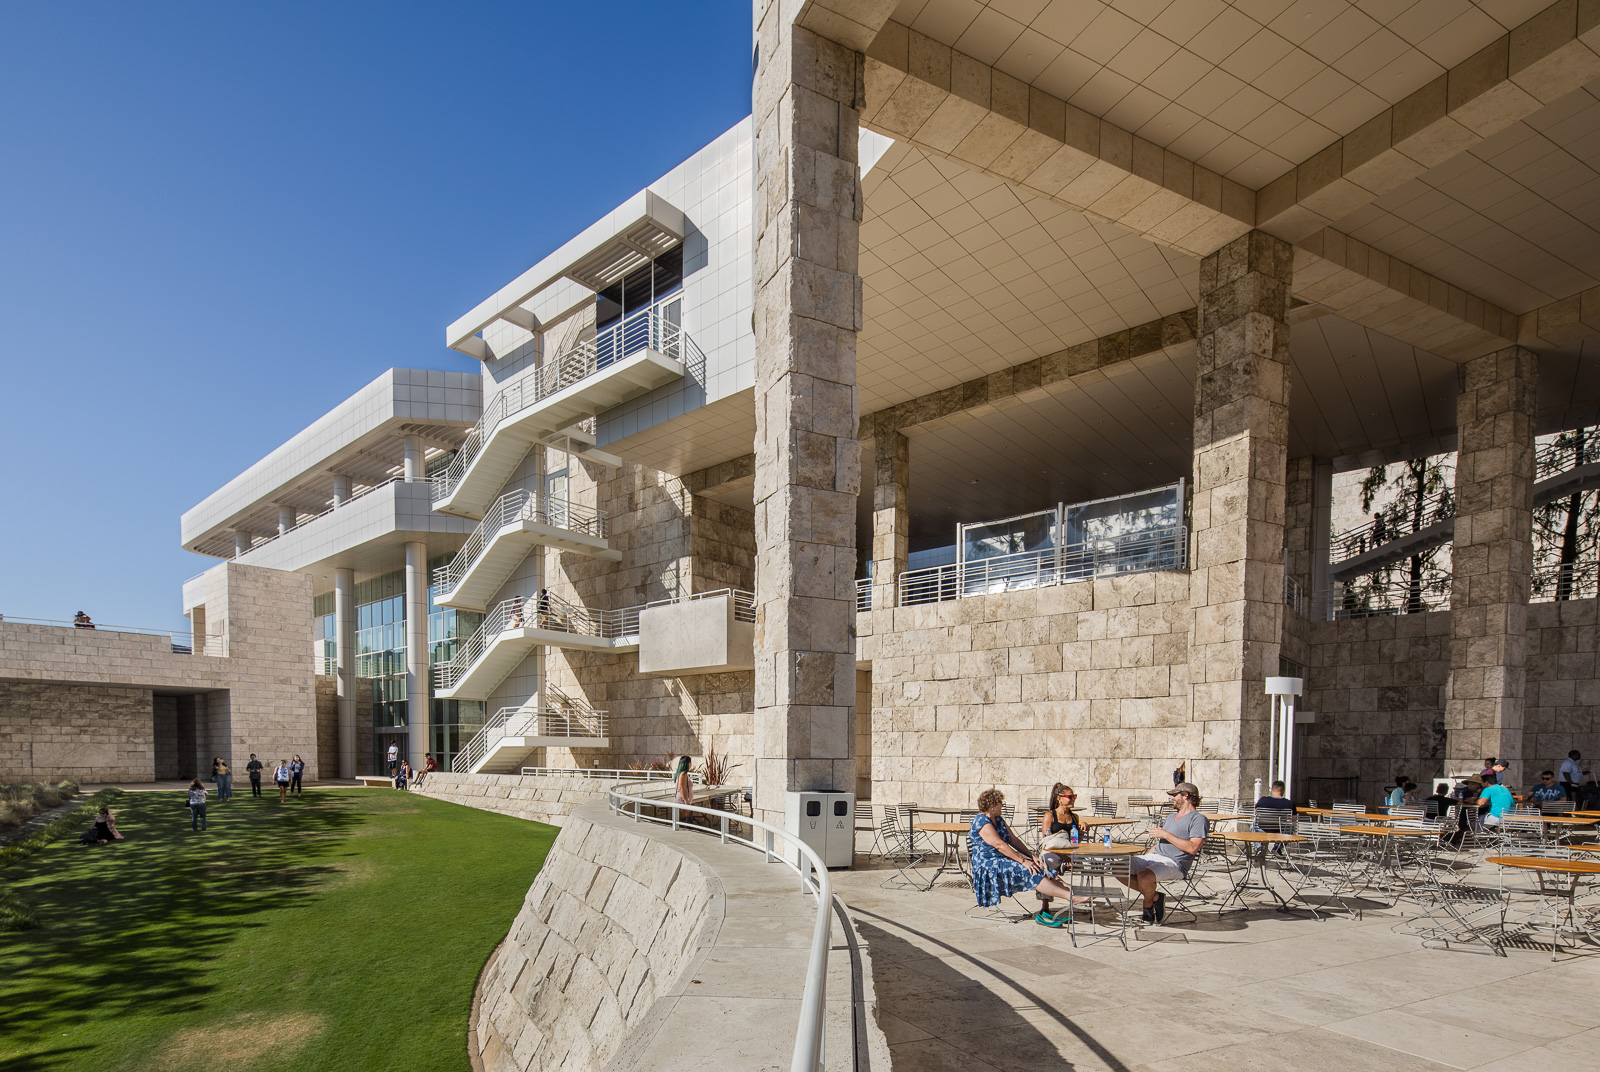 Exteriors and terraces of the Getty Center museum, in Los Angeles, California, United States